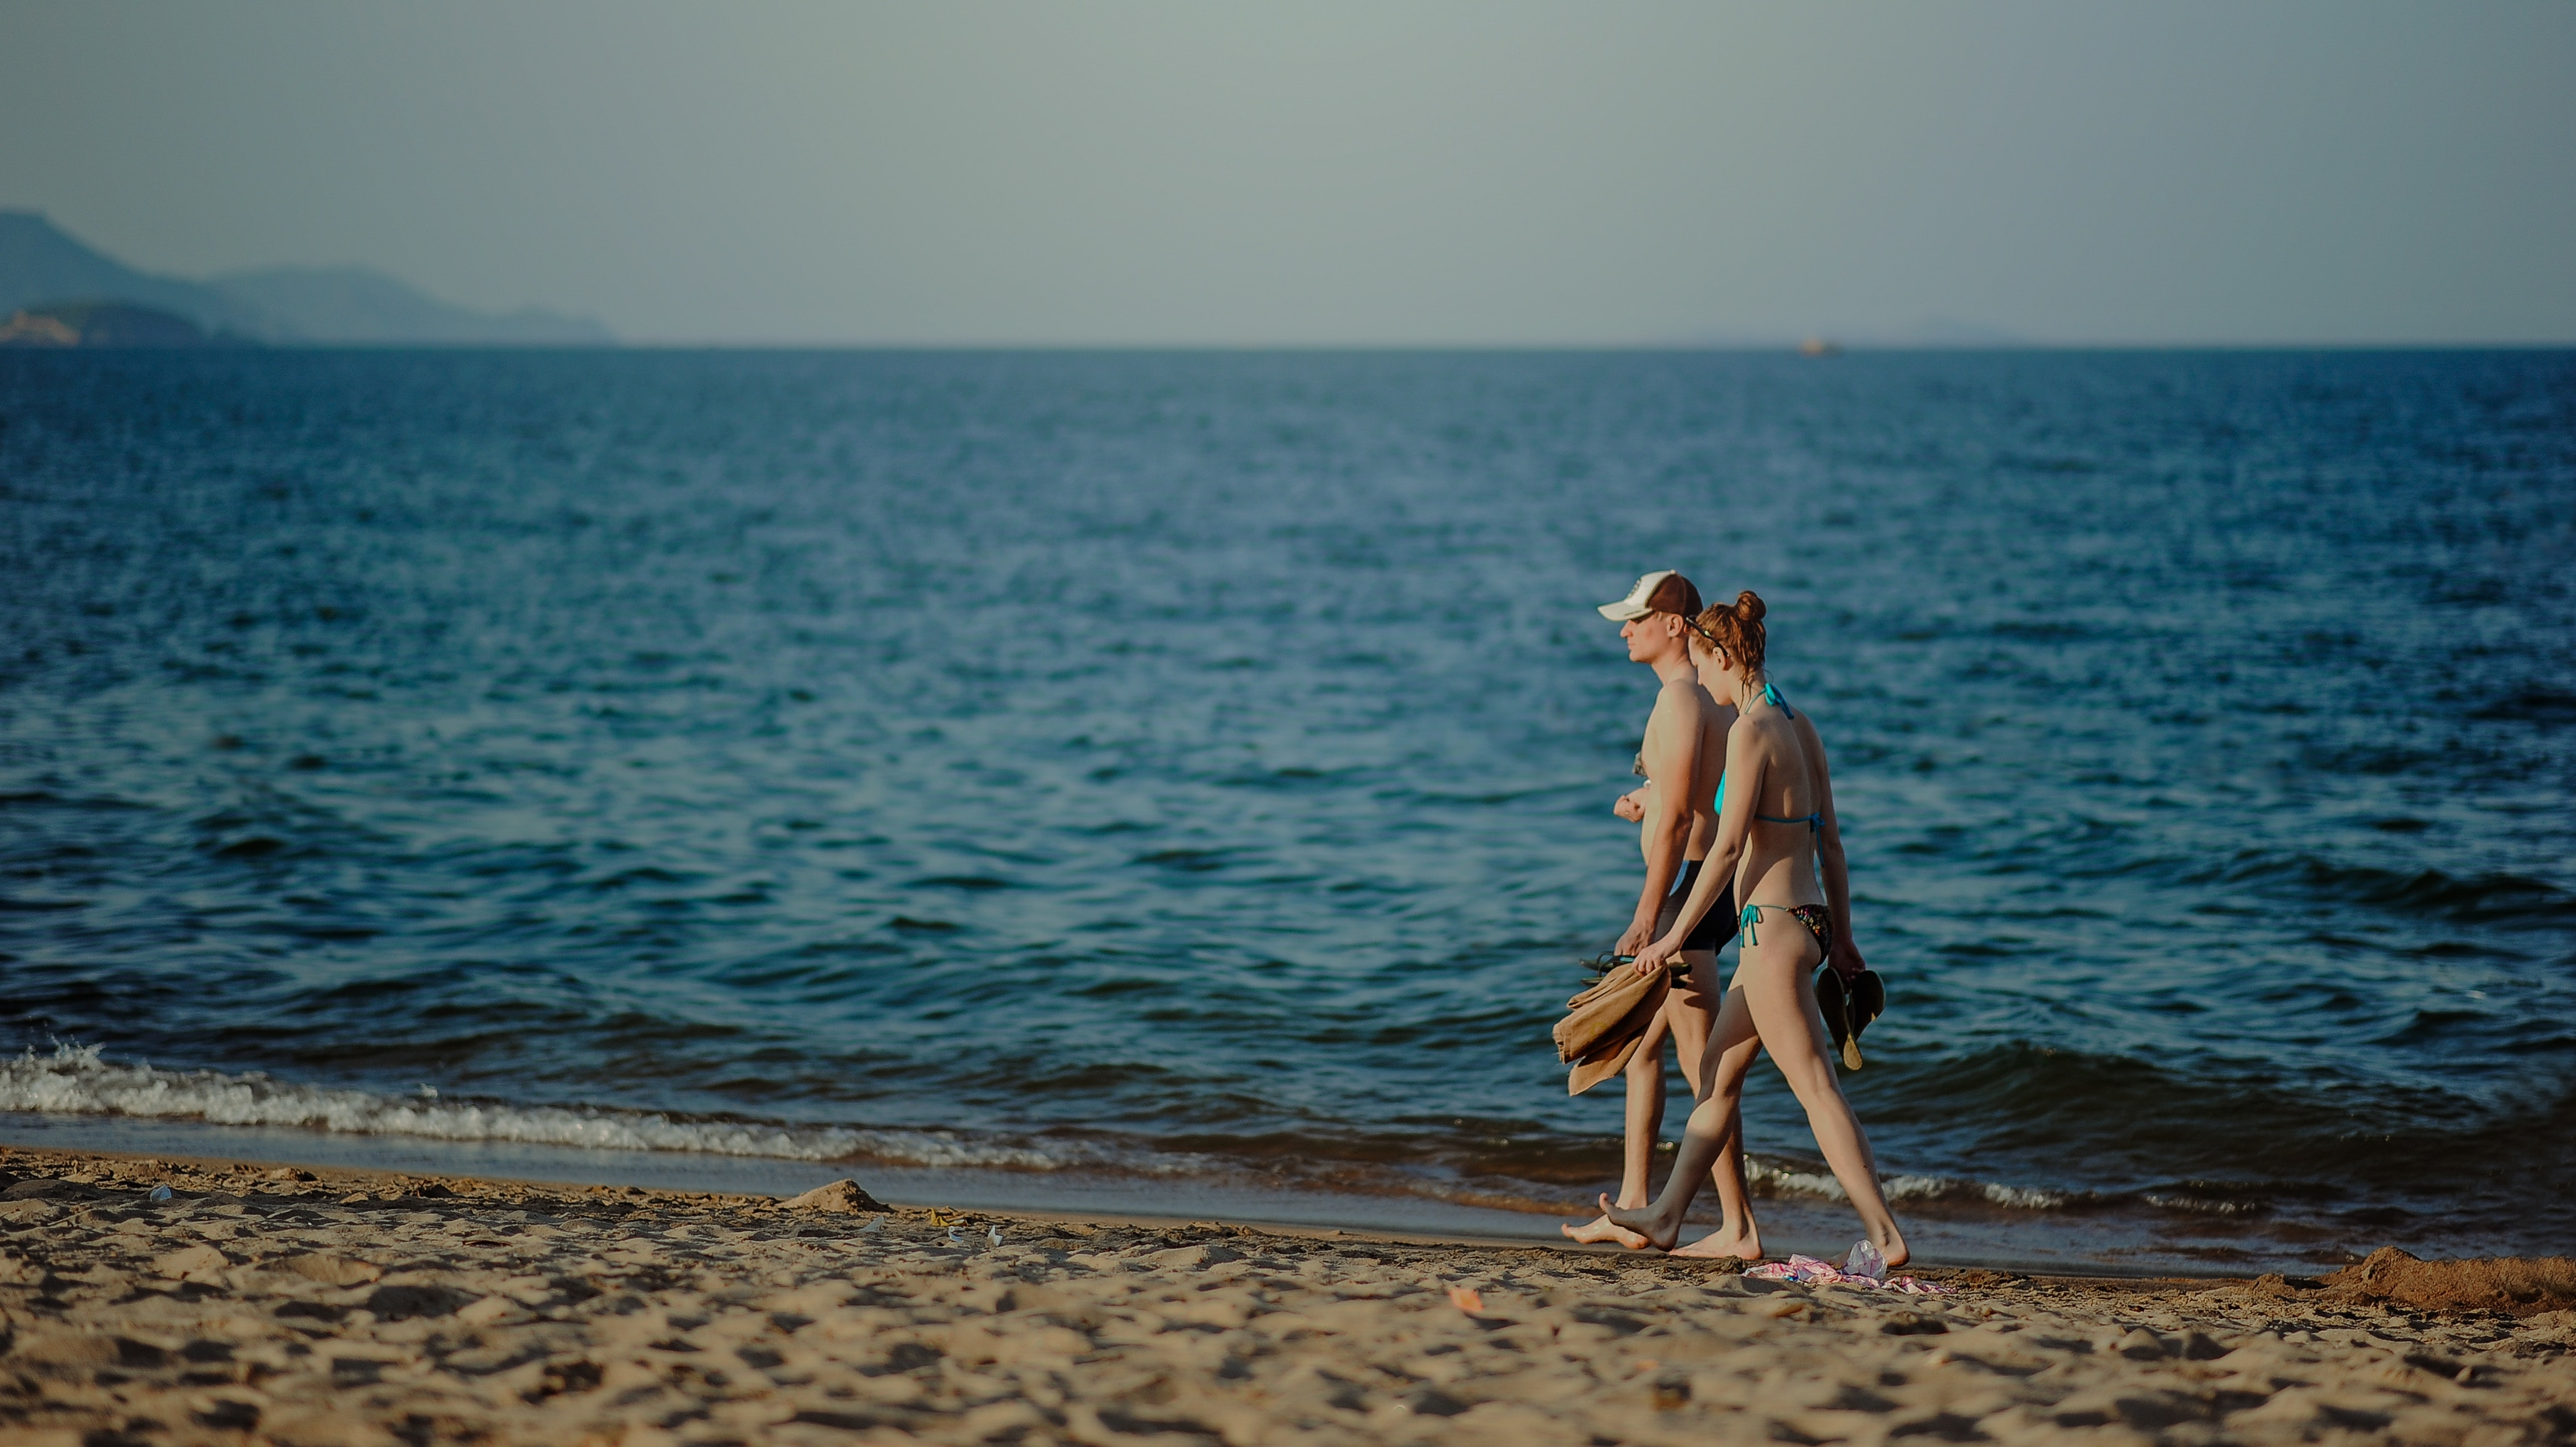 Couple walking on the beach at daytime photo